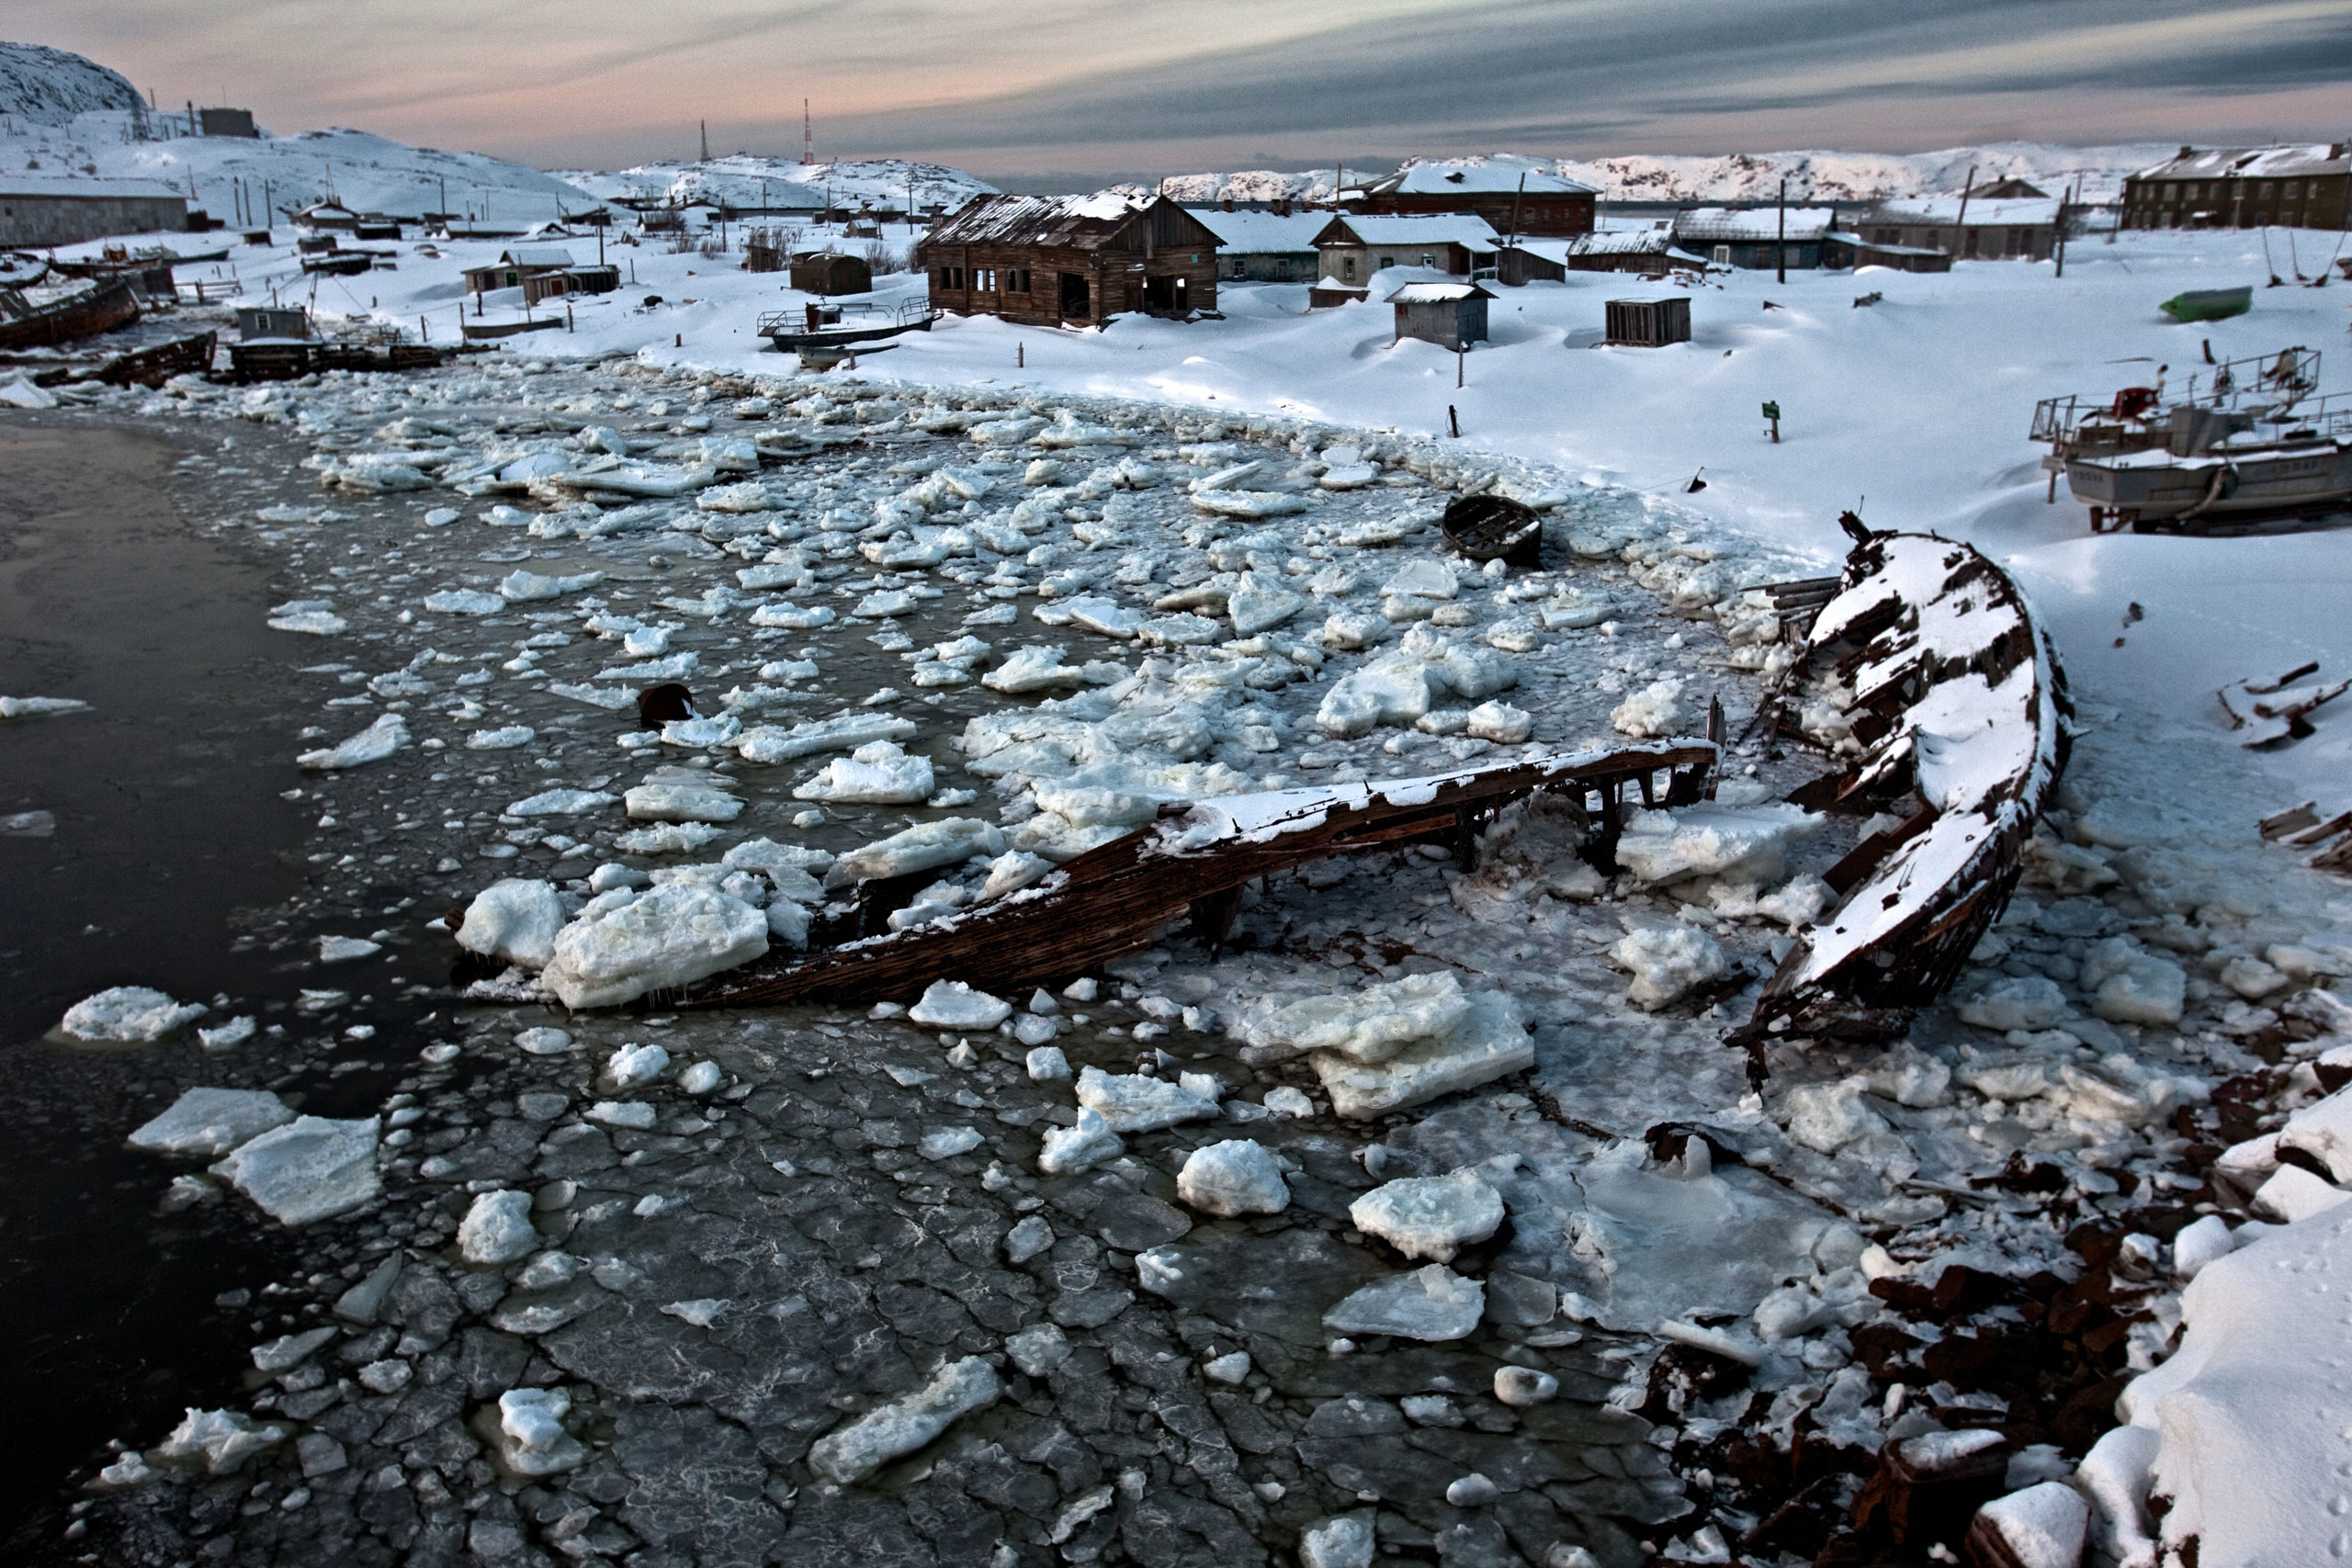 Sunken boats and abandoned houses lay rotting by an icy bay in Teriberka, a former prosperous fish-processing community waiting for an economic boom through gas production, February 2012.